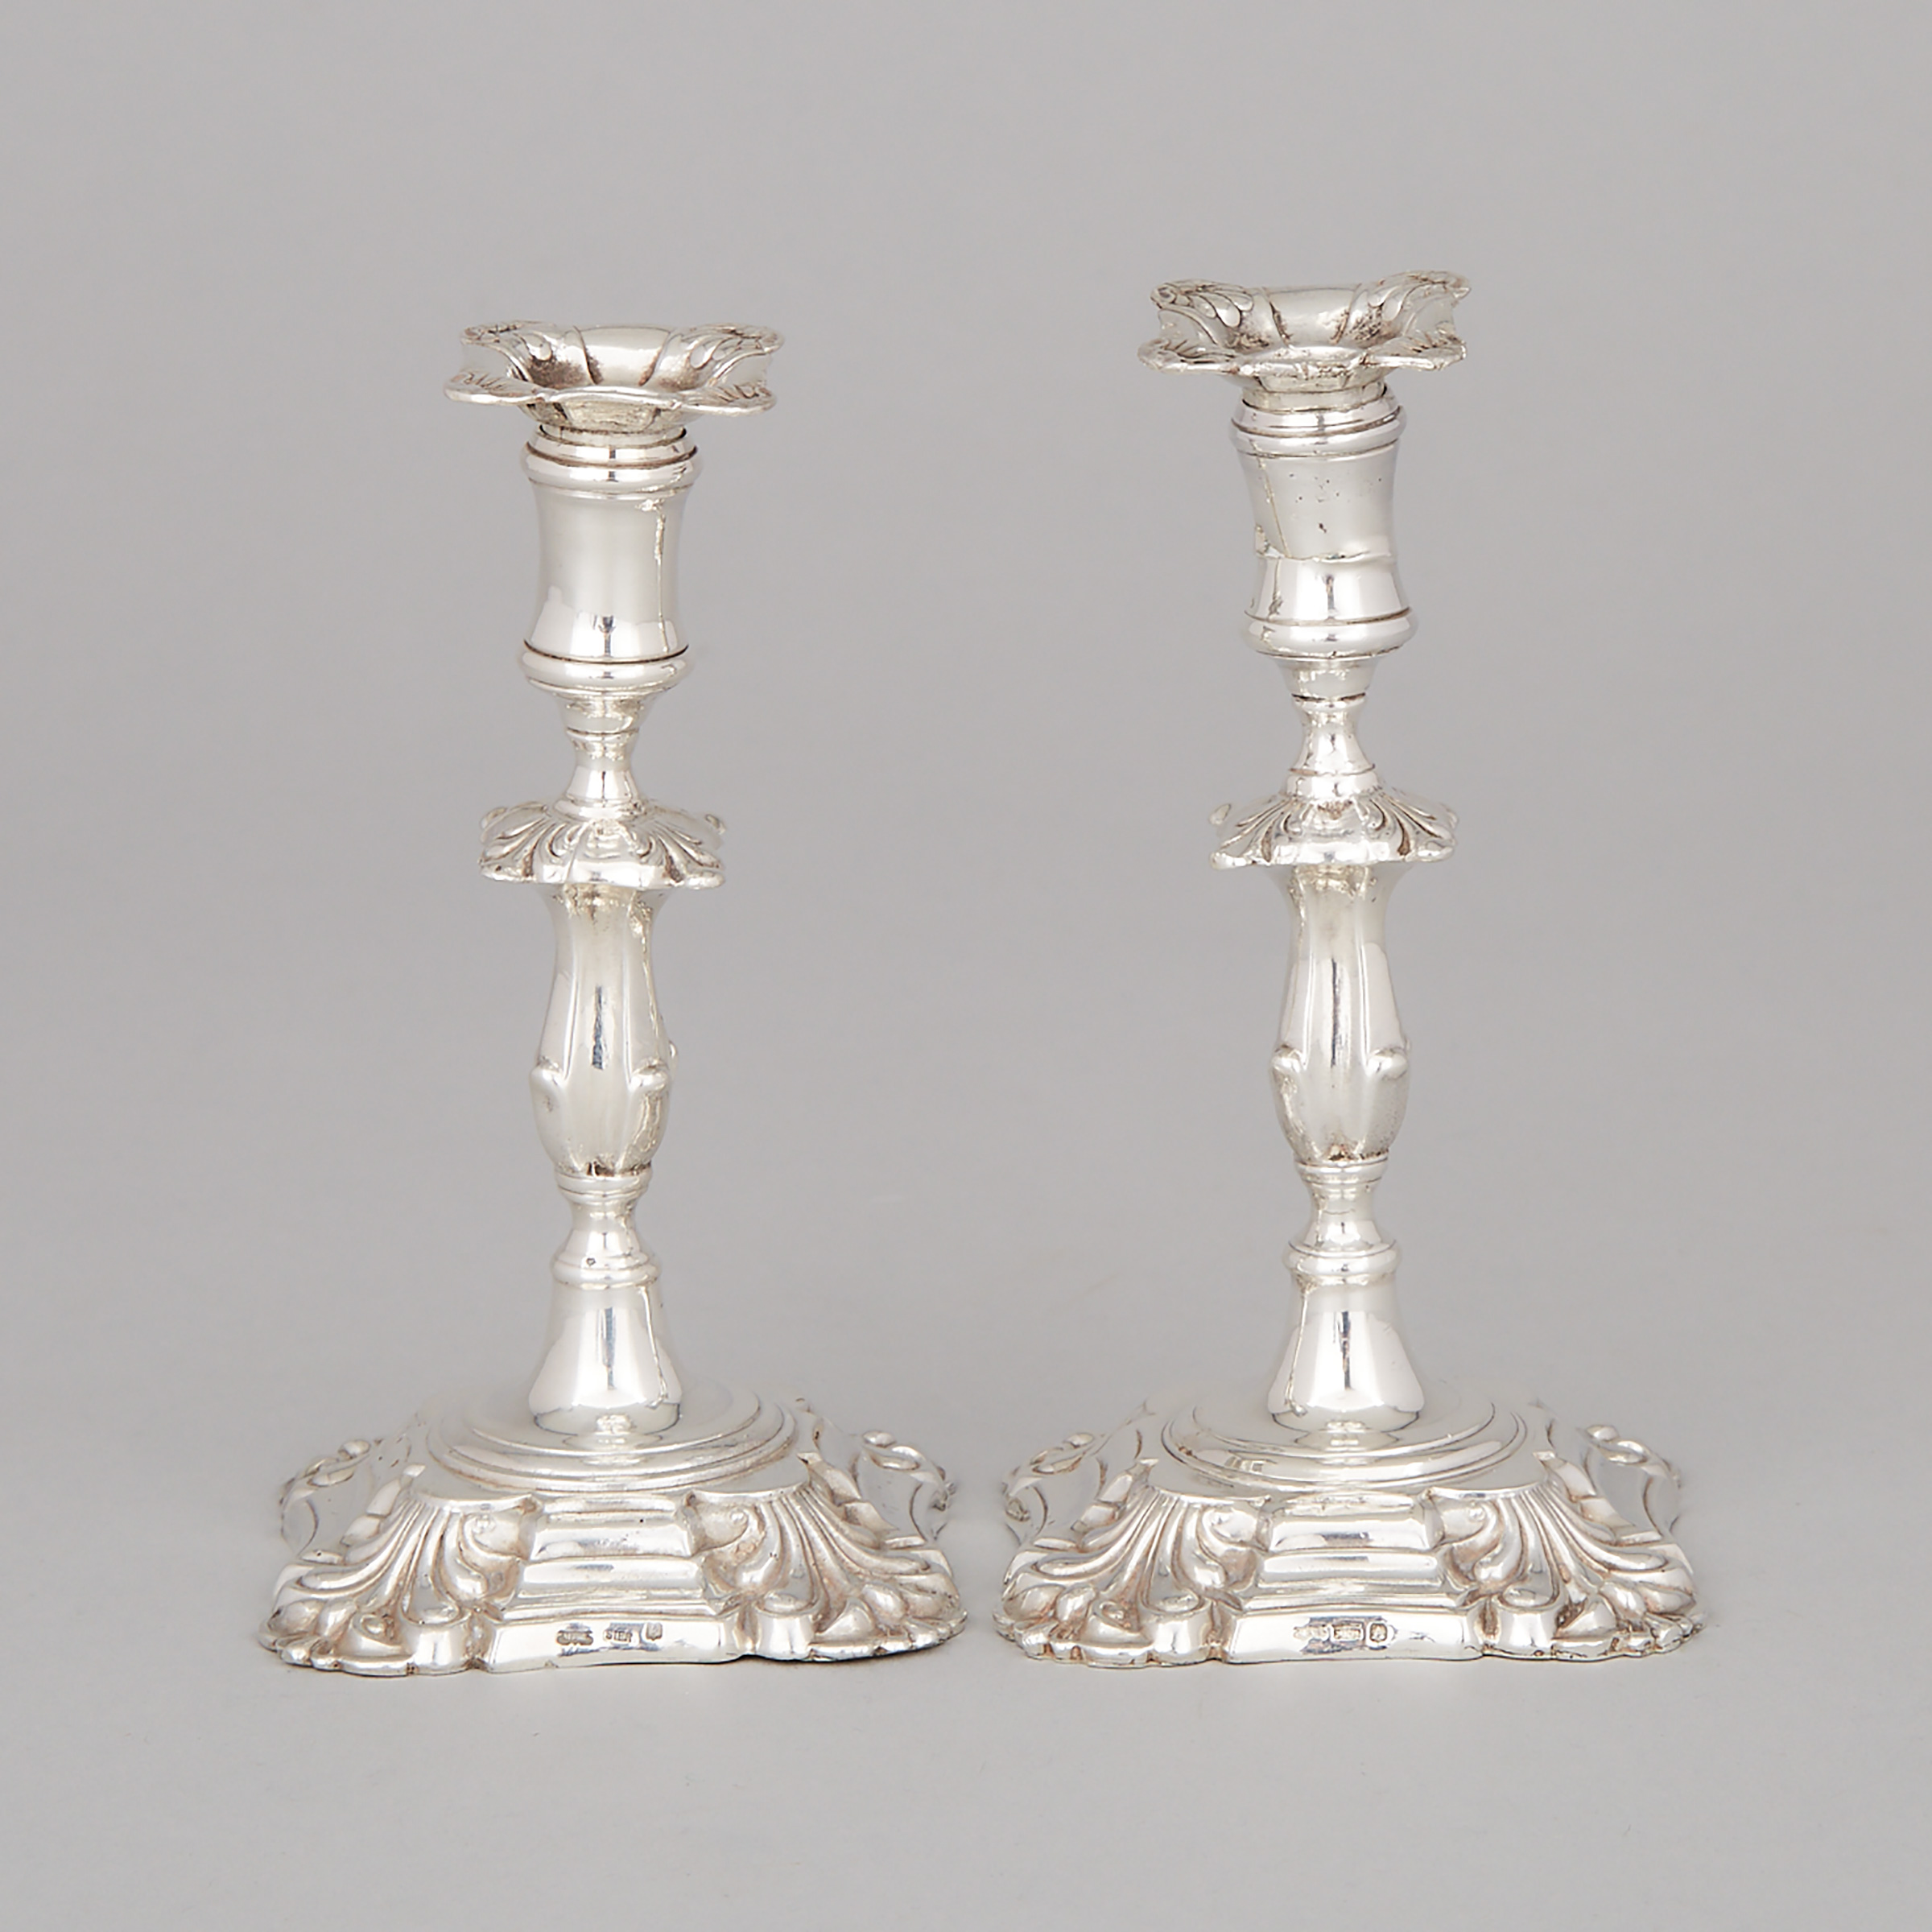 Pair of Canadian Silver Tapersticks, Michael Surman, Salt Spring Island, B.C., late 20th century